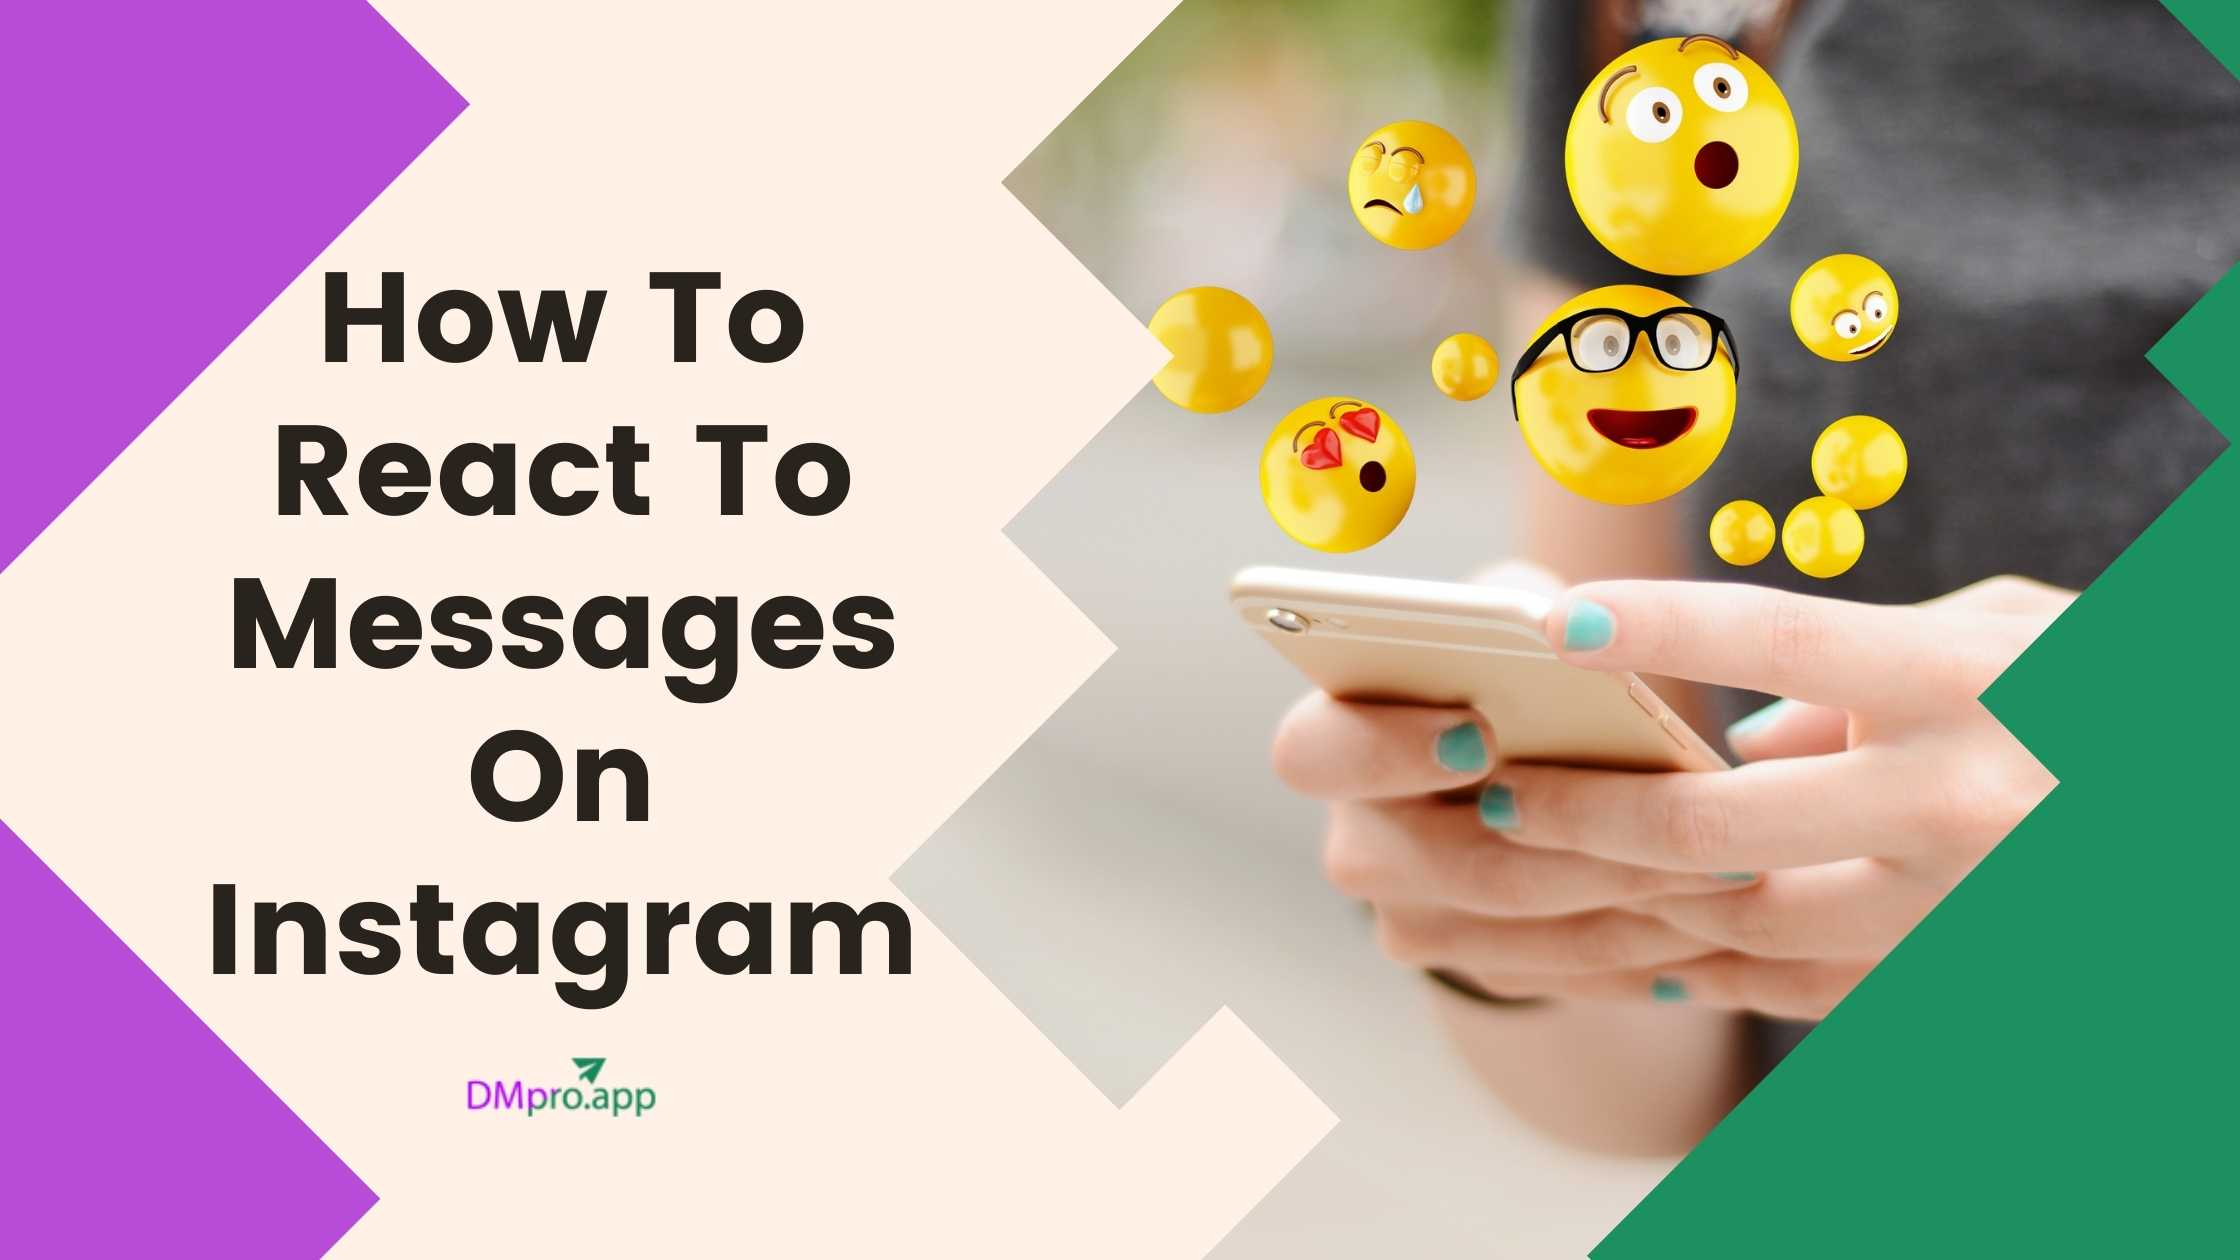 How To React To Messages On Instagram